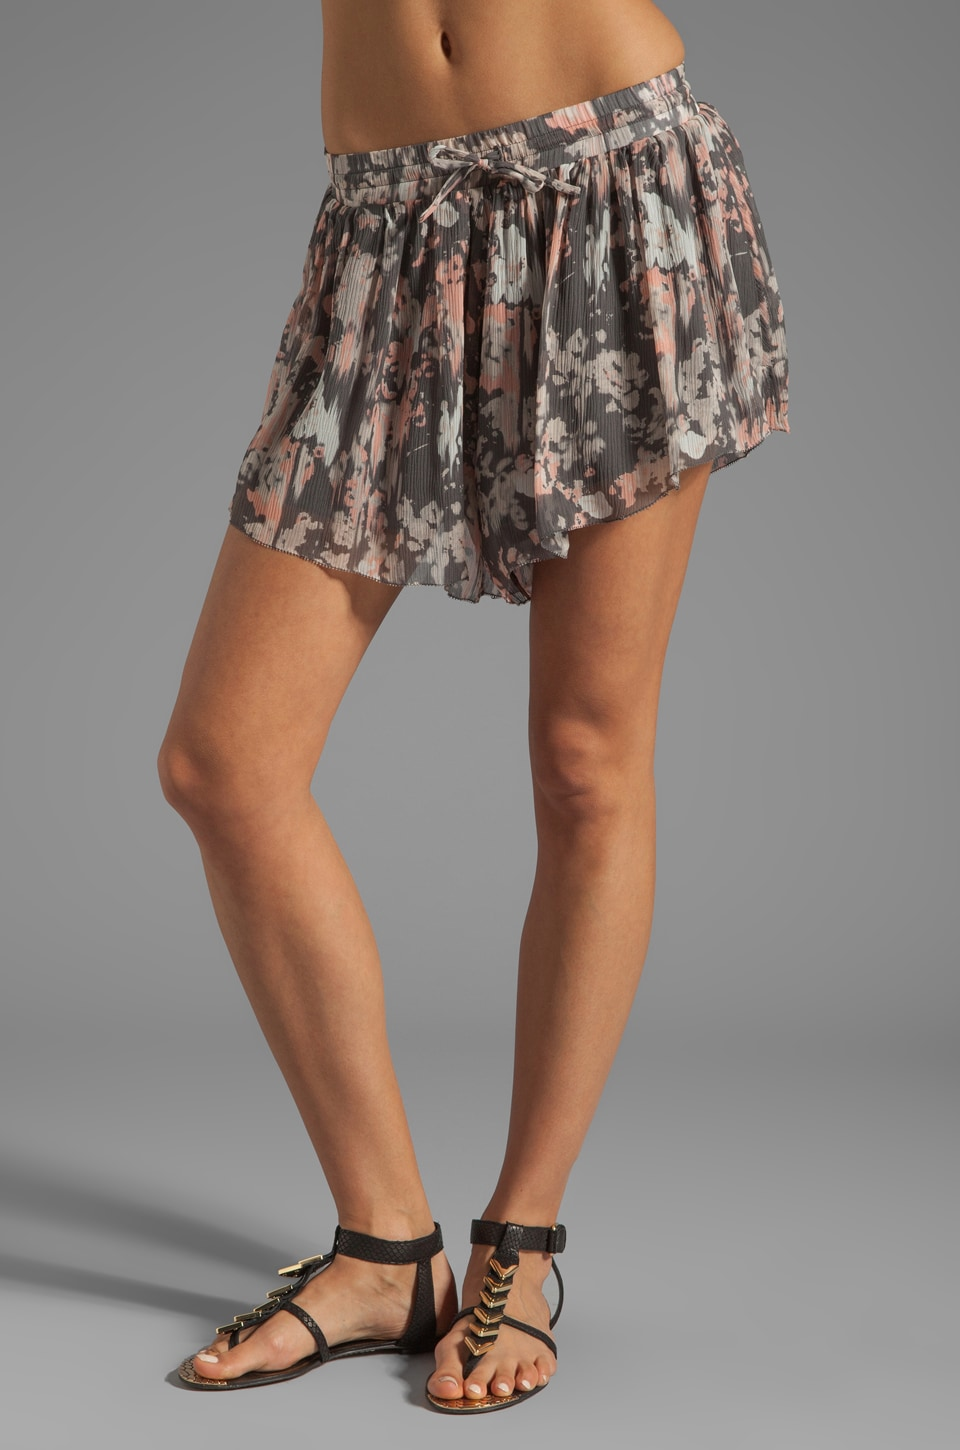 Winter Kate Fairy Short in Identity Charcoal